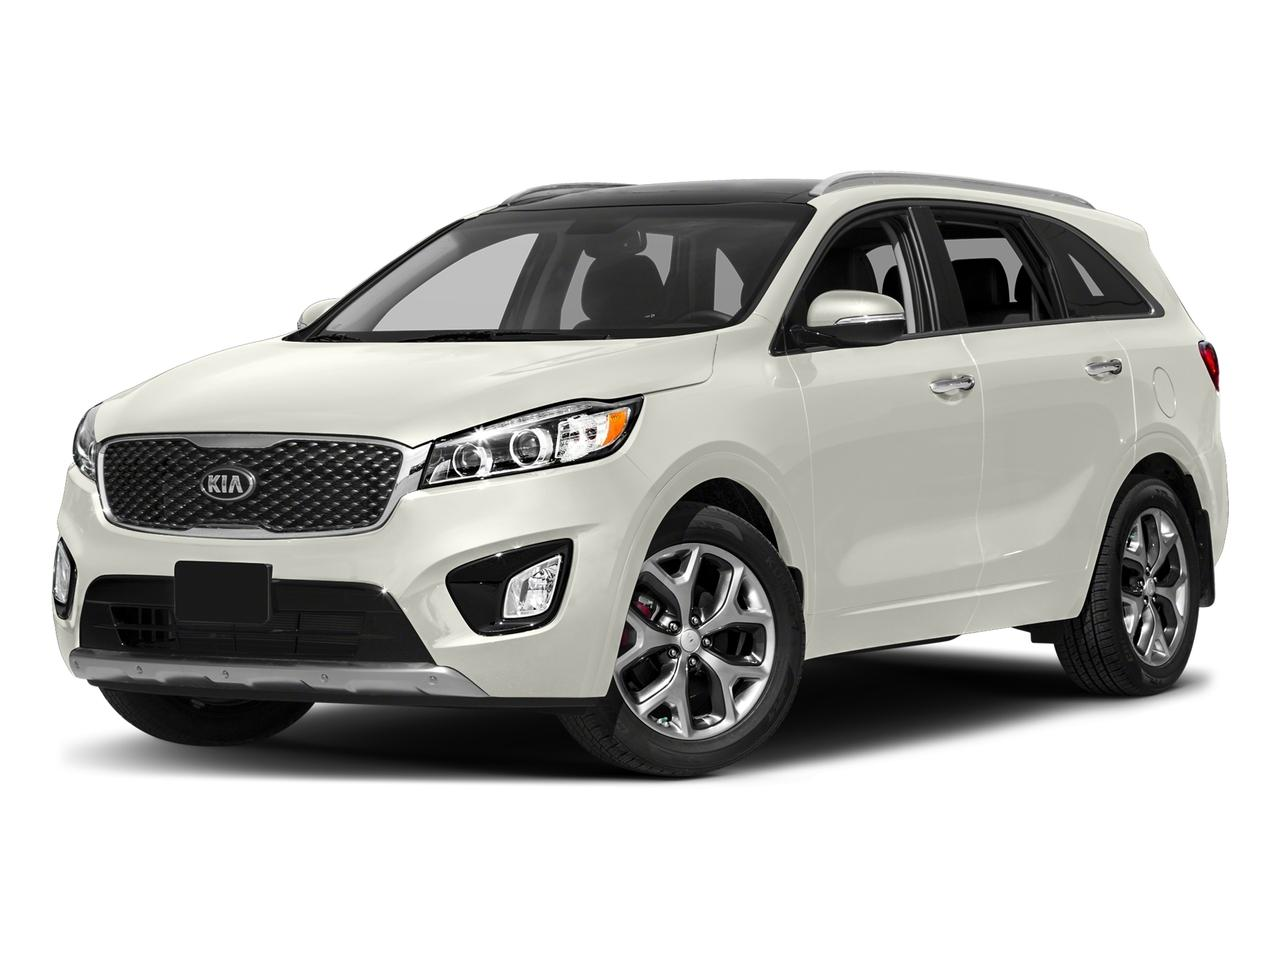 2018 Kia Sorento Vehicle Photo in Peoria, IL 61615